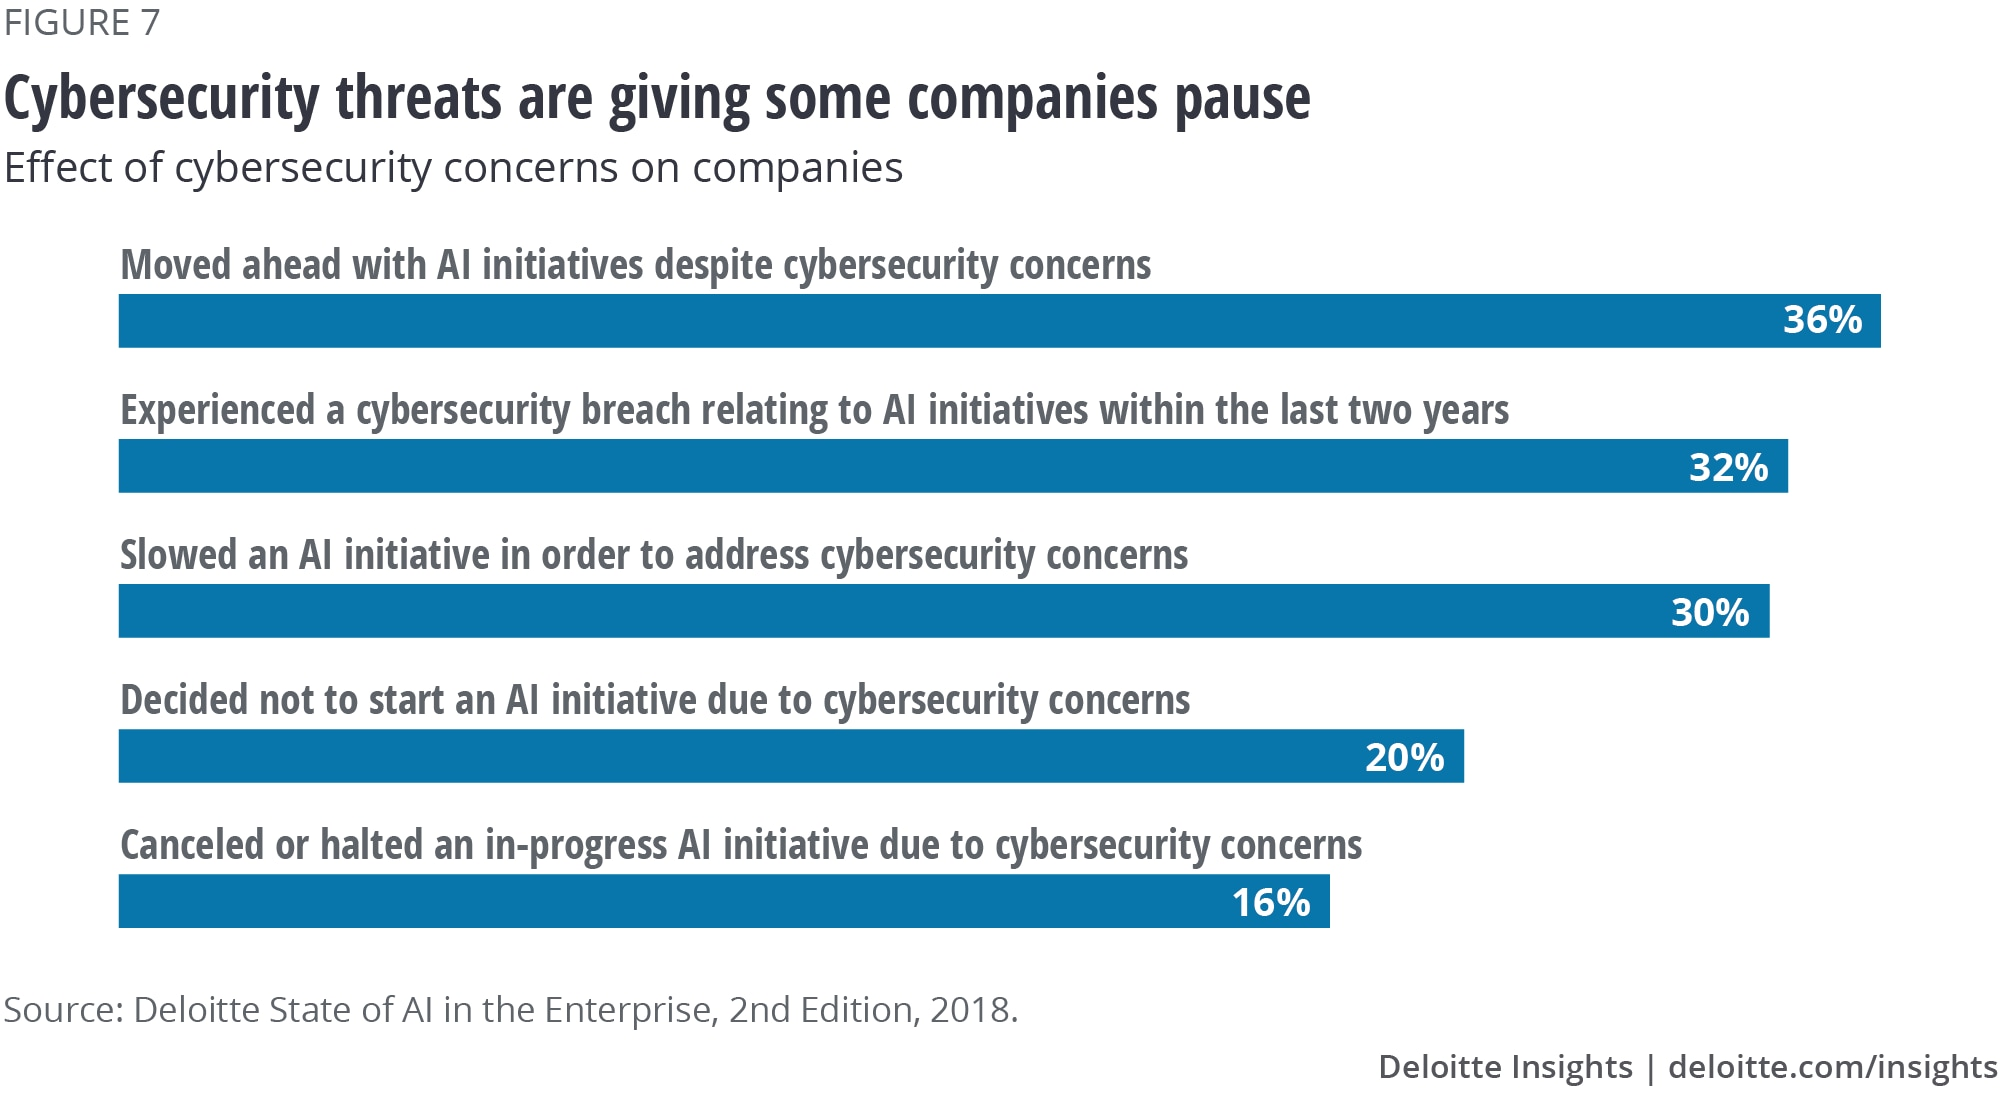 Figure 7. Cybersecurity threats are giving some companies pause